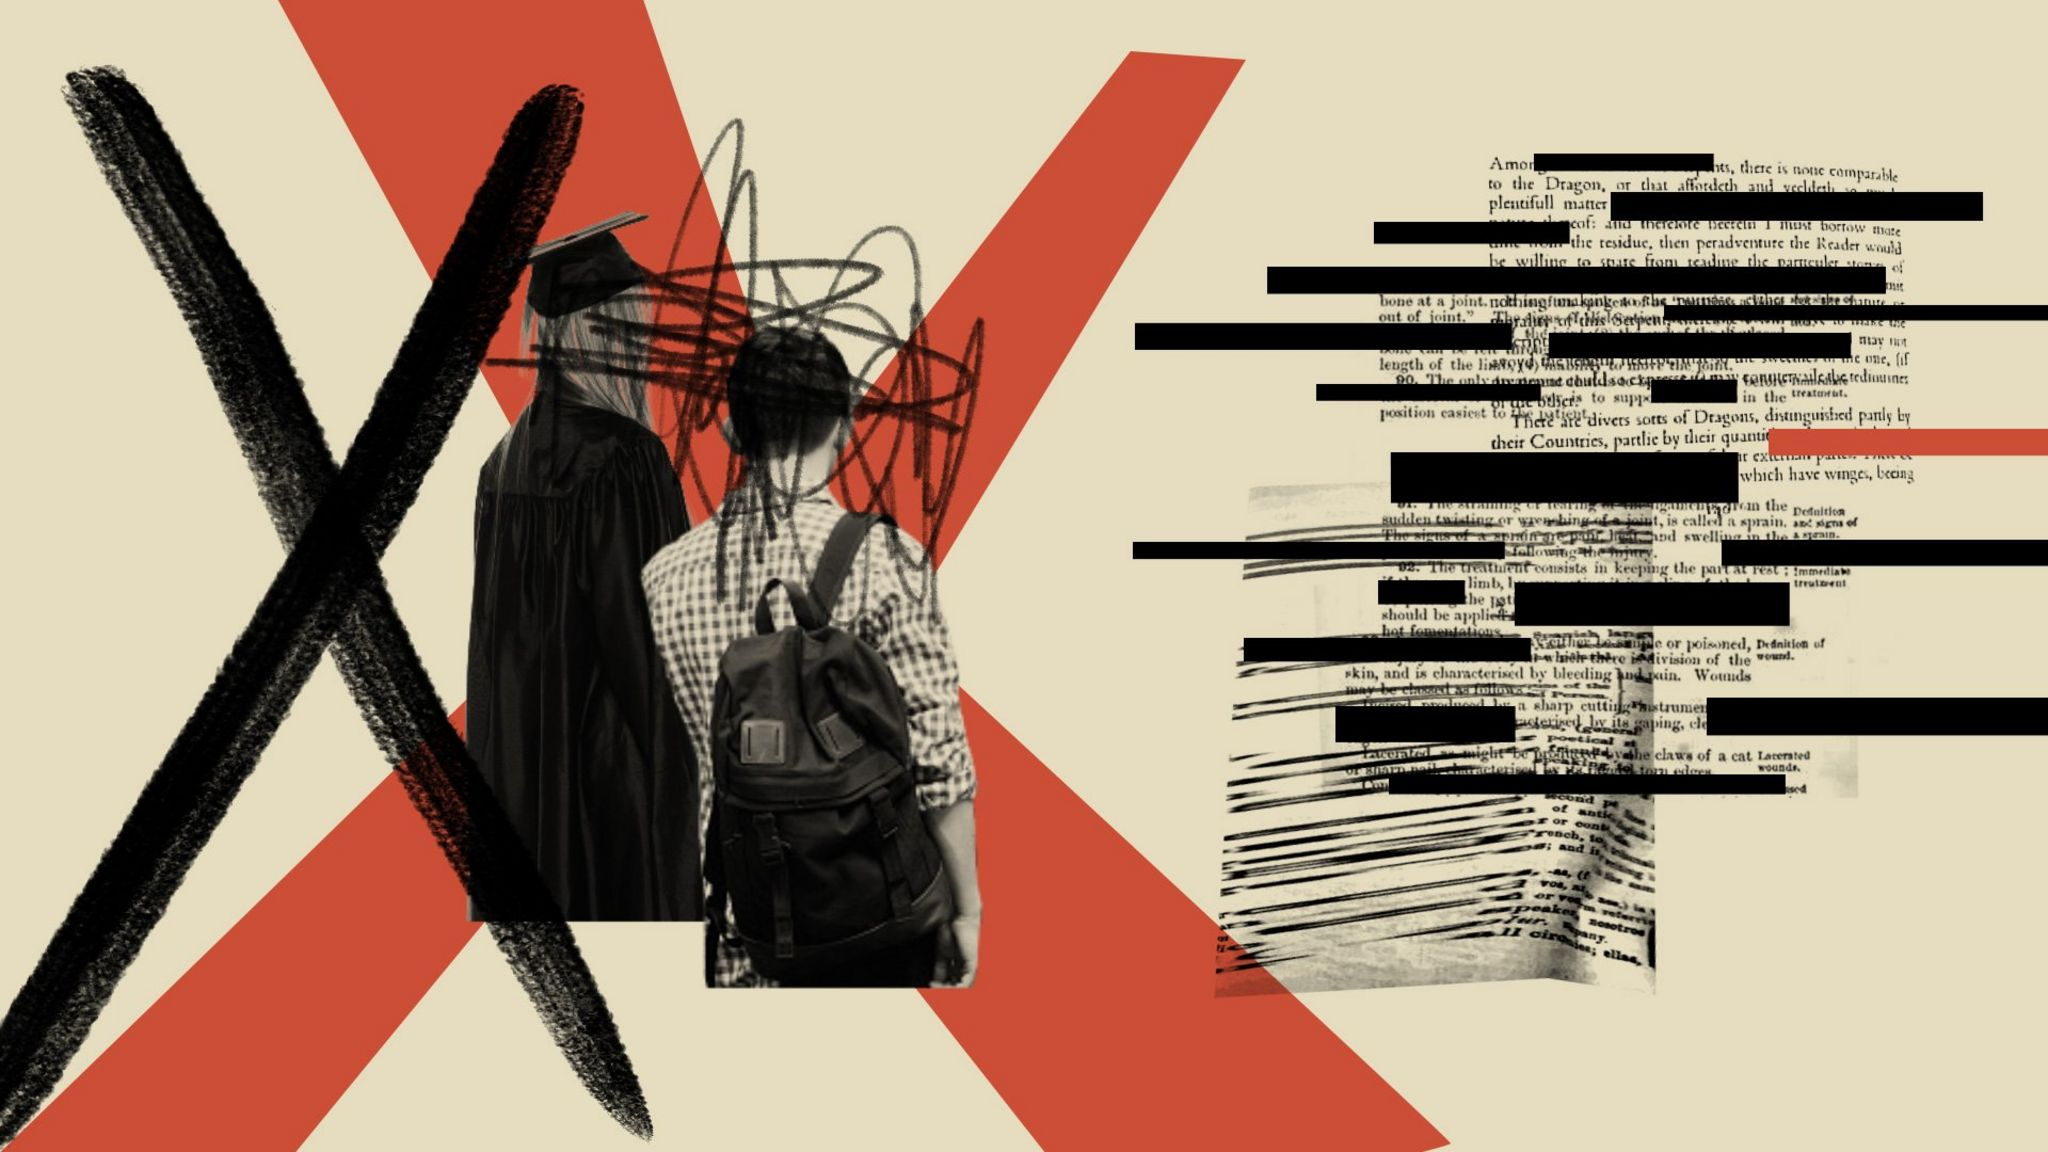 illustration of backs of students next to censored text